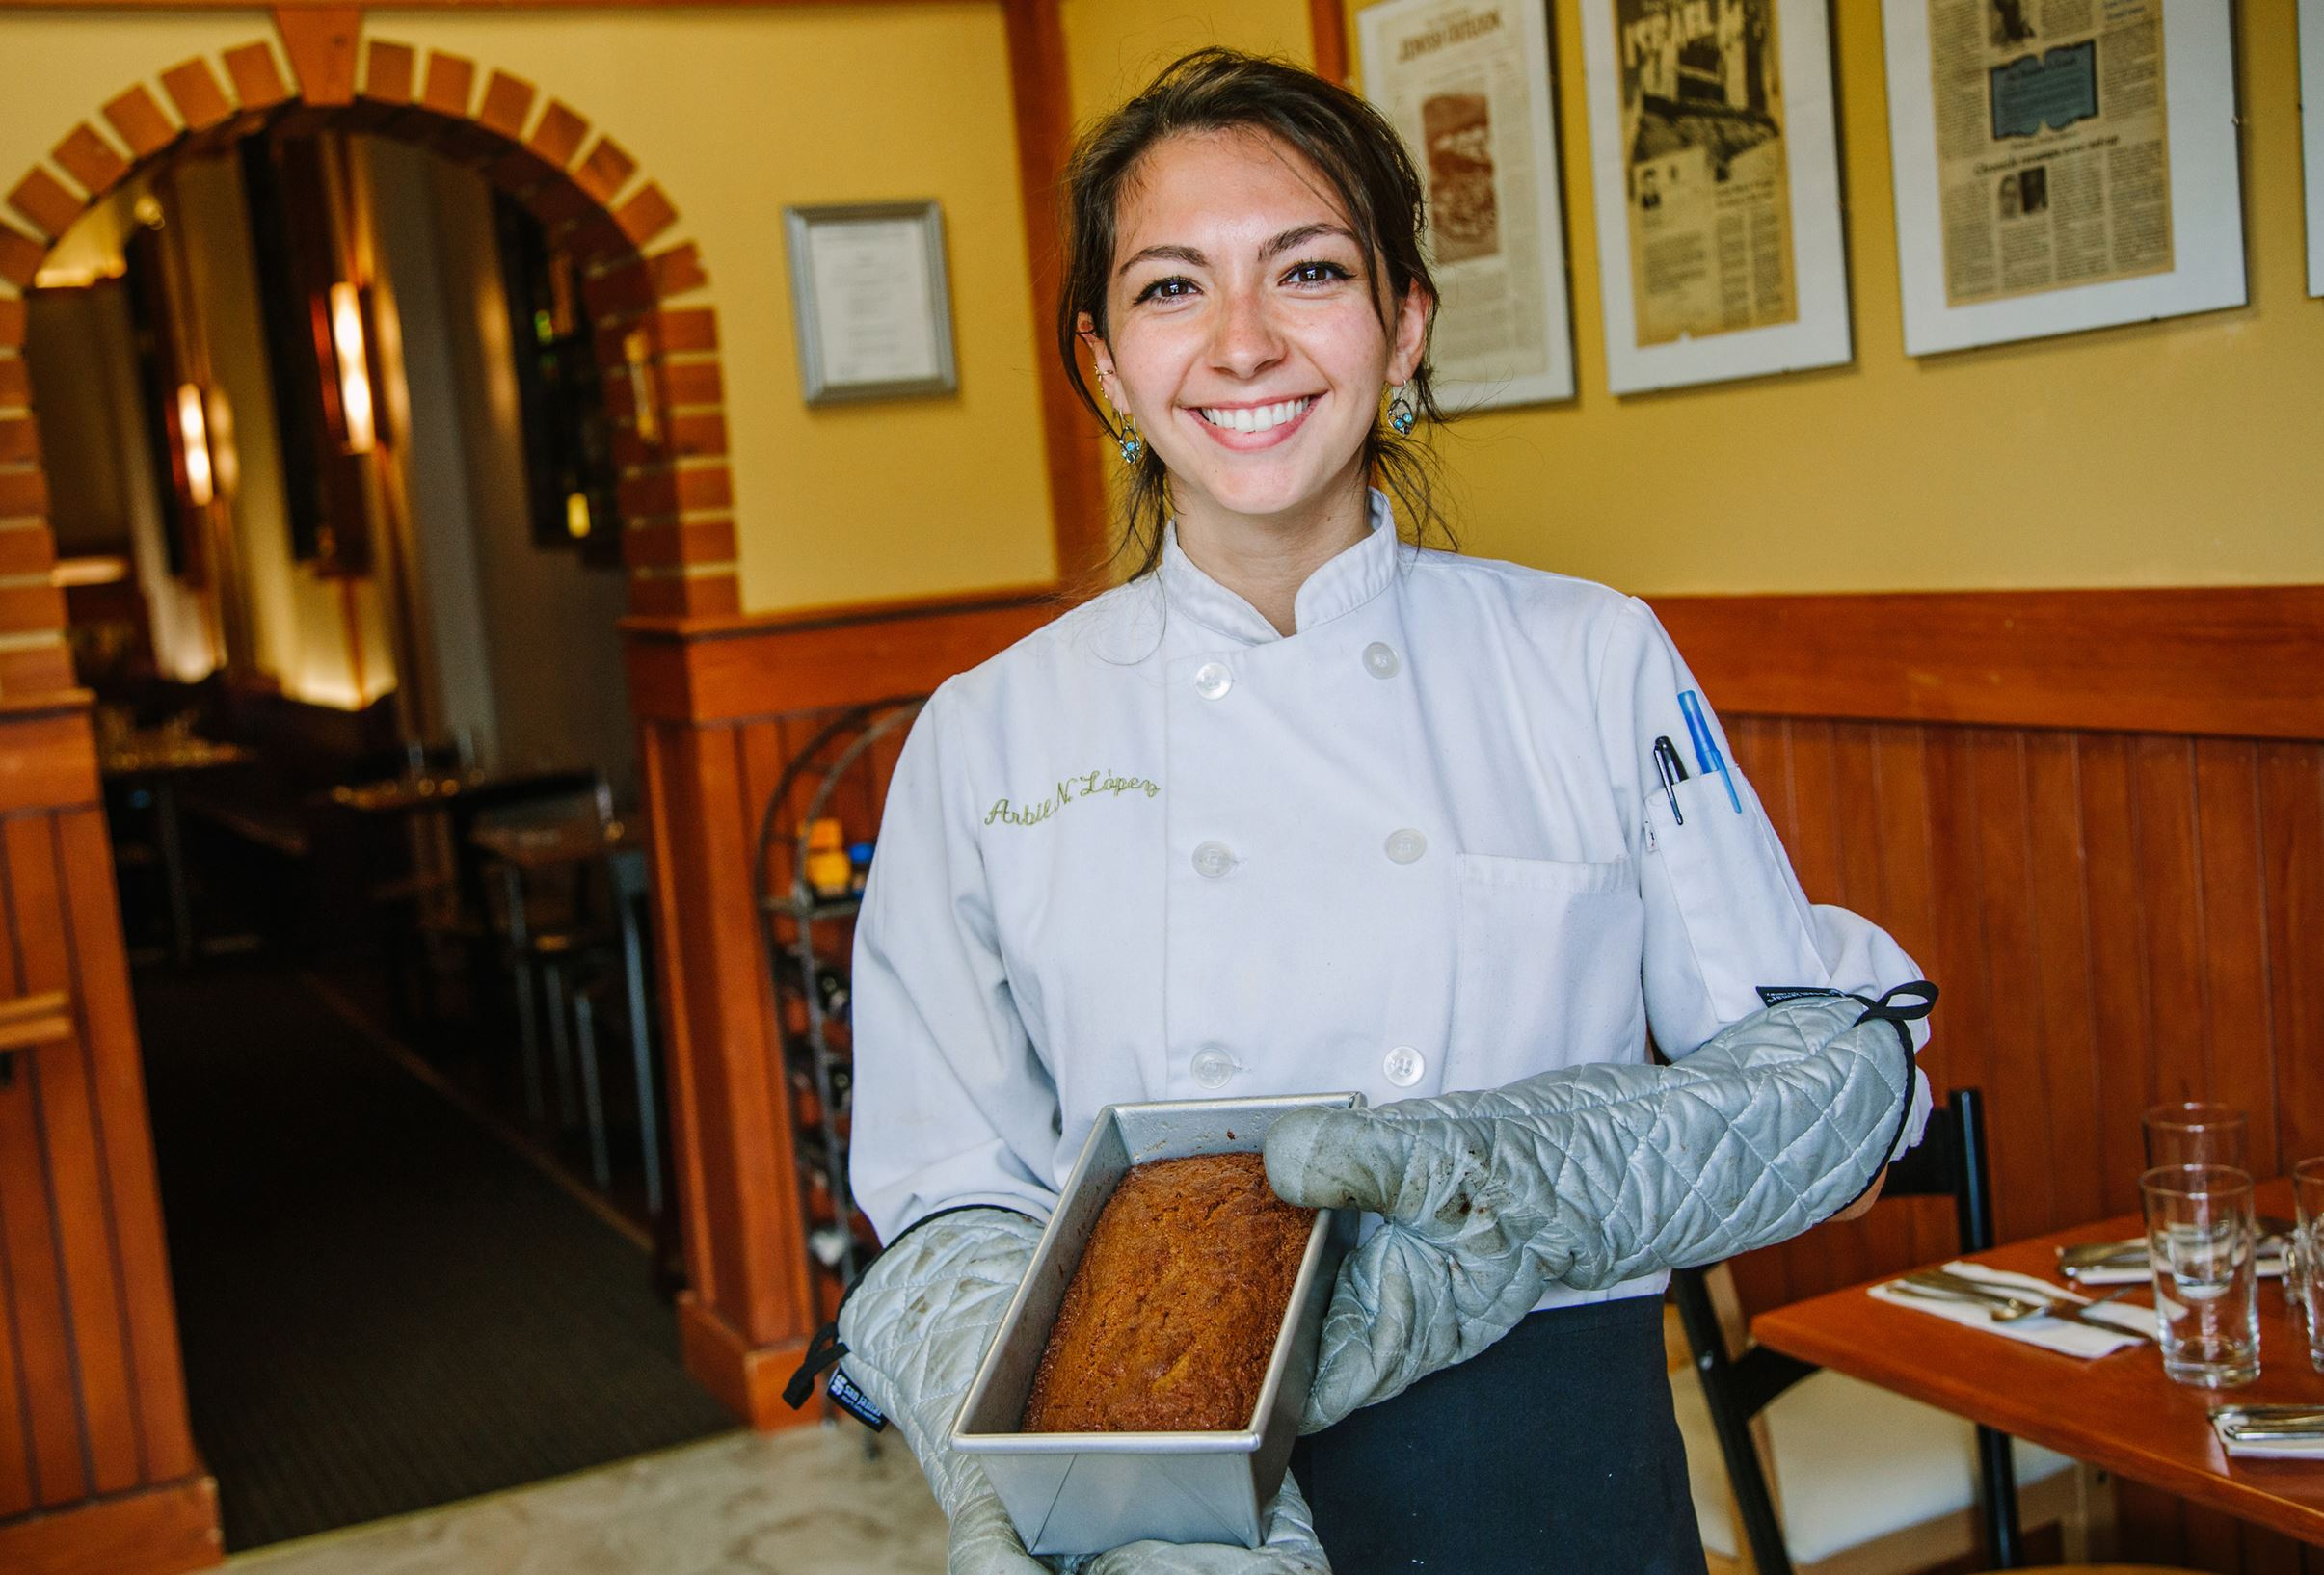 HoneyCake0917 Pastry chef Arbil Lopez poses for a photo with a honey cake at Cafe Eighteen in Squirrel Hill.